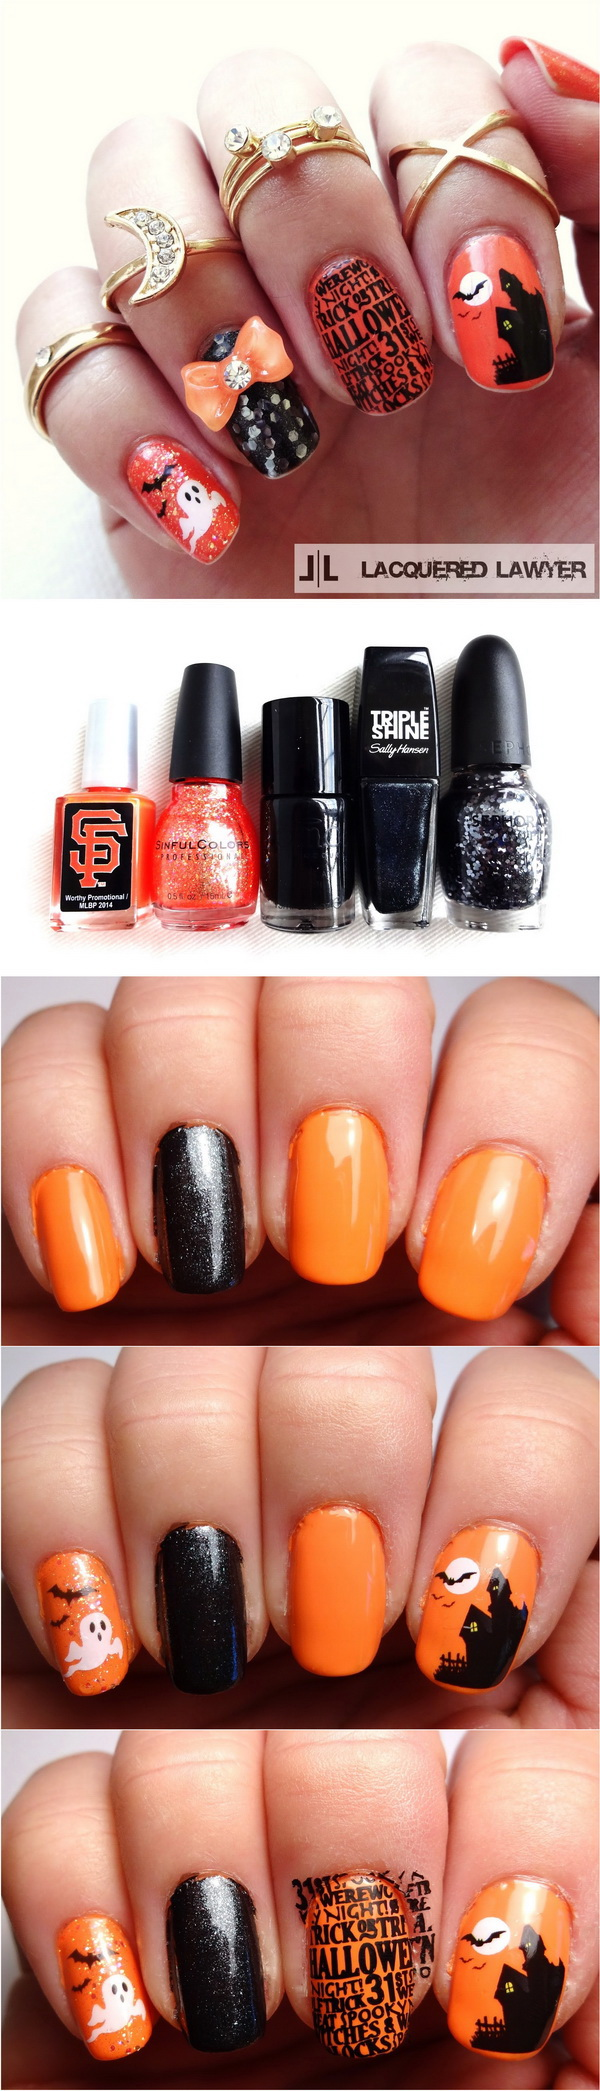 Diy halloween nail art designs with step by step tutorials for halloween nail art prinsesfo Images